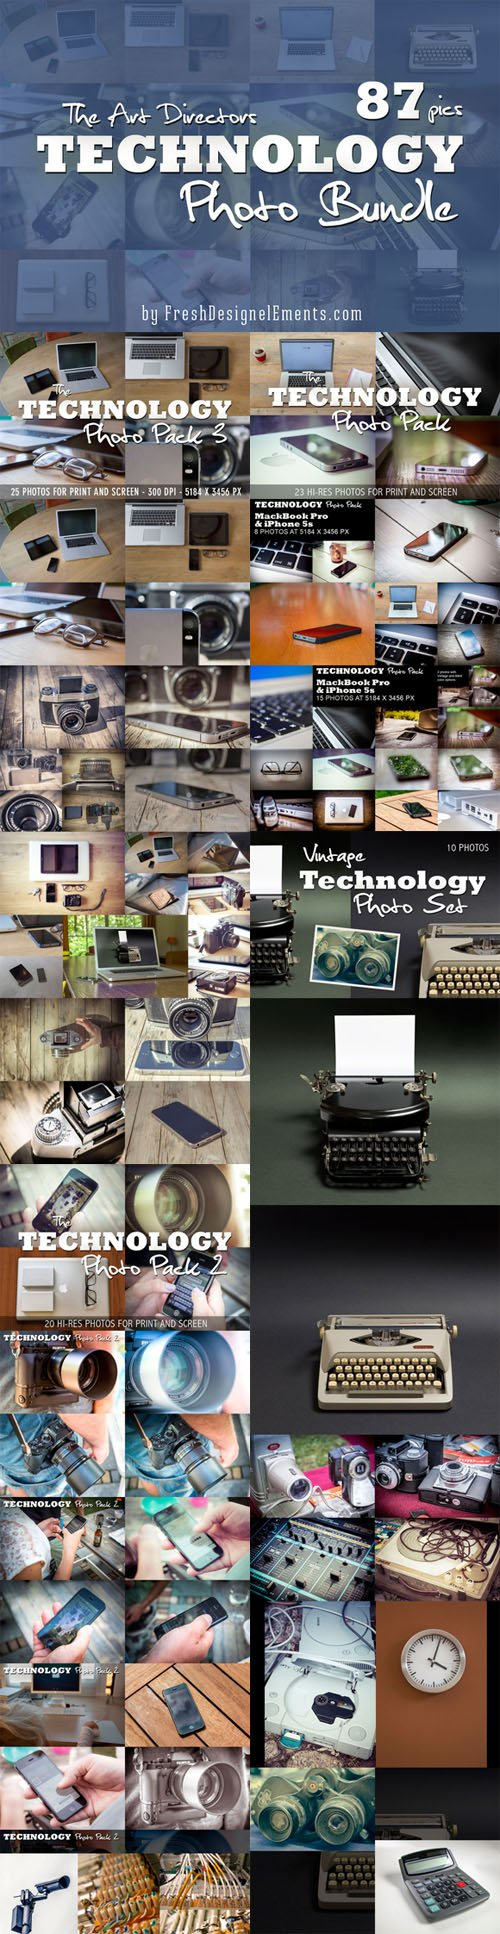 Technology Photo Bundle 87 HRs - Creativemarket 307582